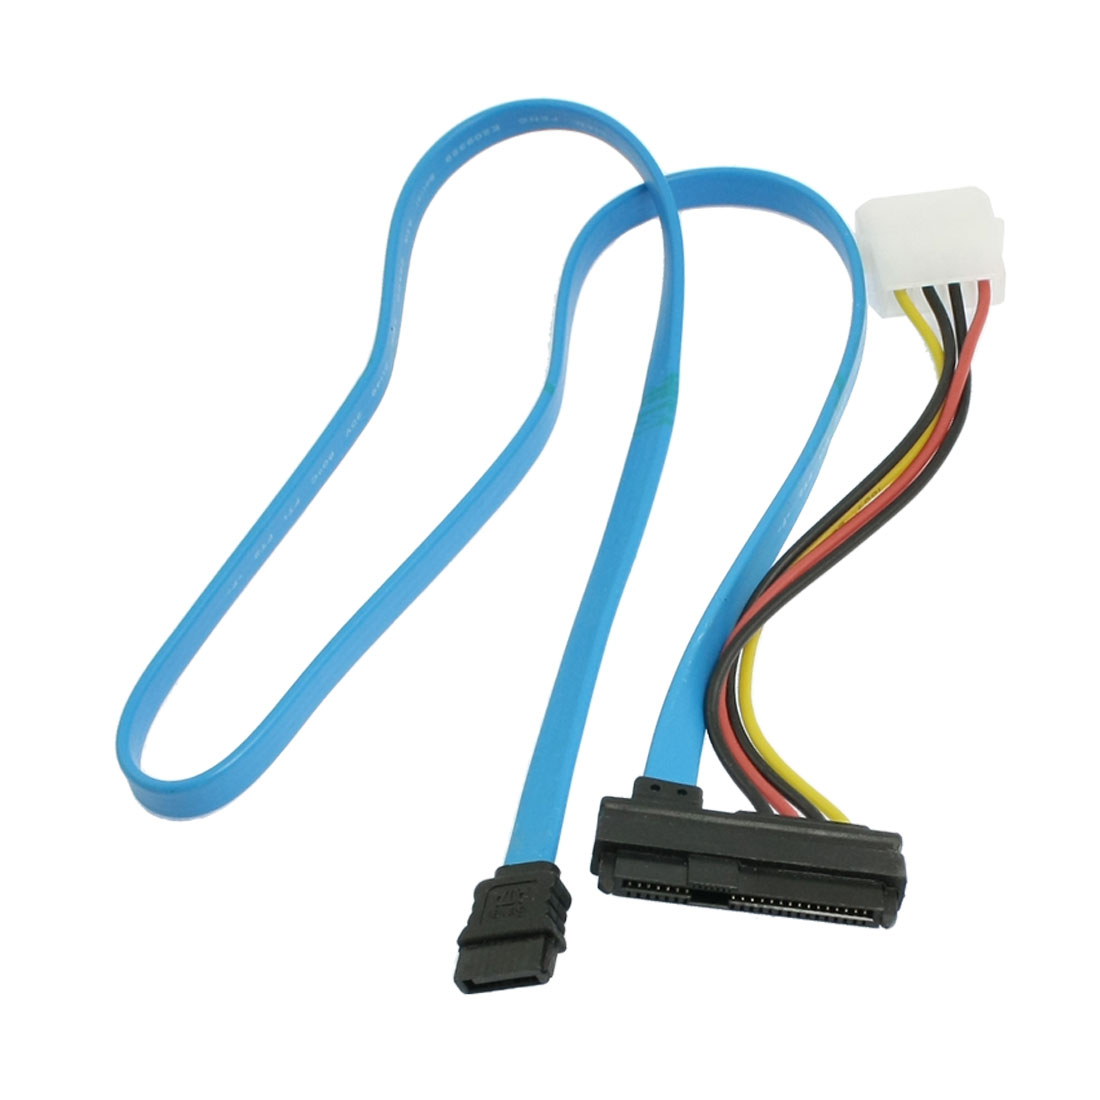 "27"" Long 4 Pin IDE to 7+15 Pin Female SATA Extension Cable Adapter"